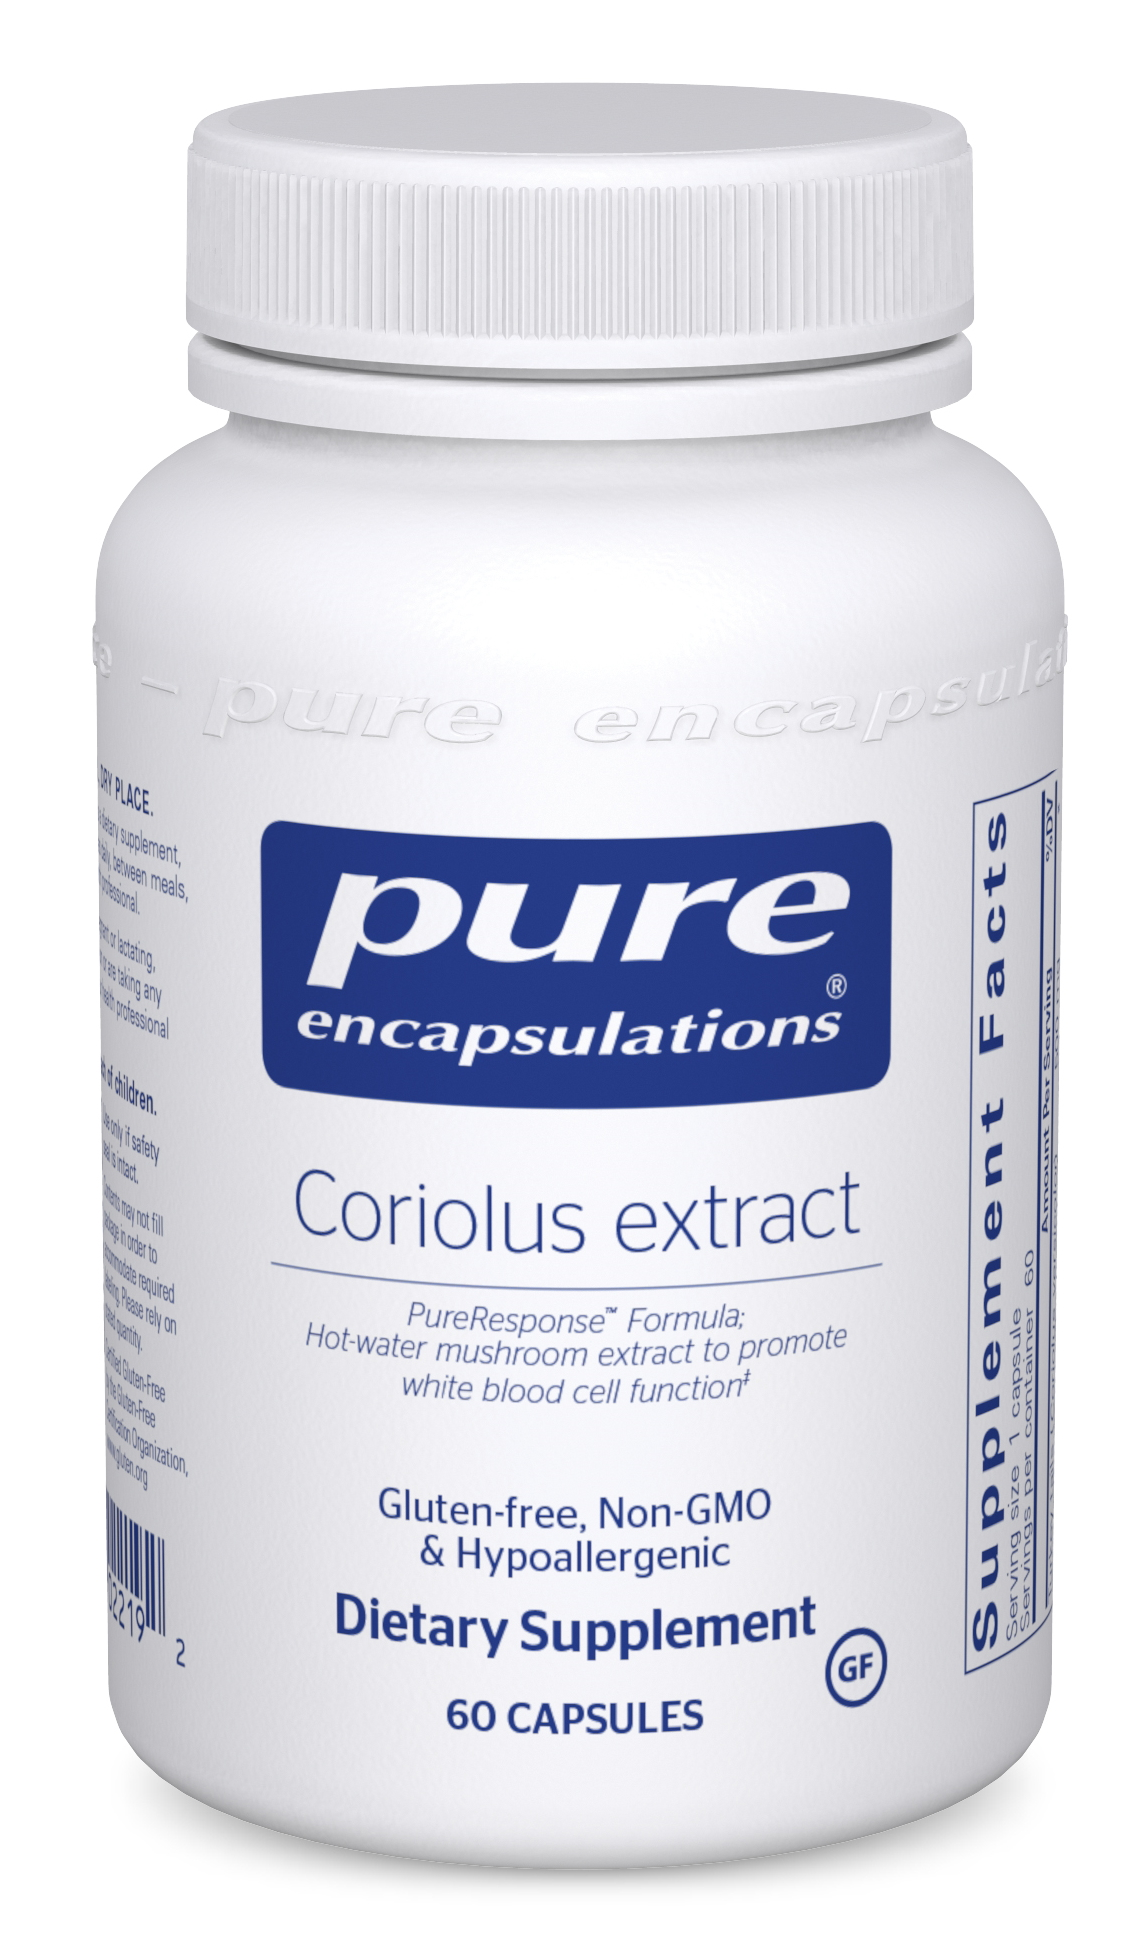 Pure Encapsulations Coriolus Extract